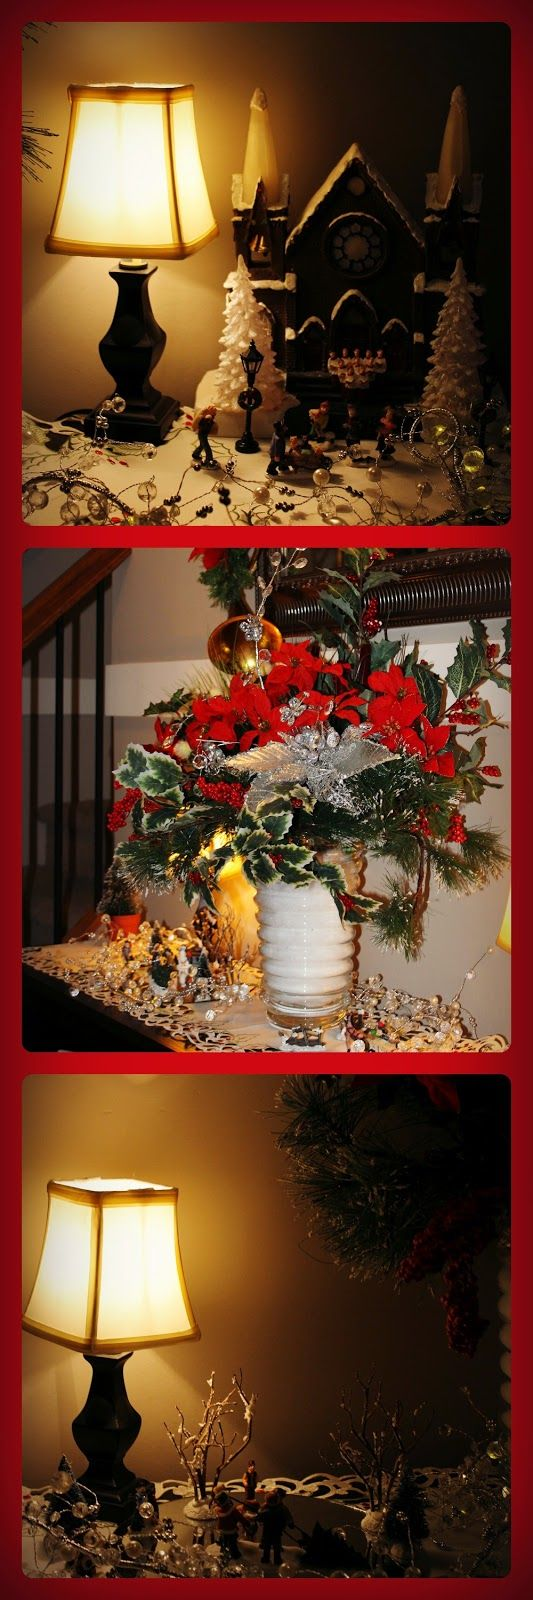 WELCOME TO MY HOUSE THIS CHRISTMAS---By Christine Lindsay